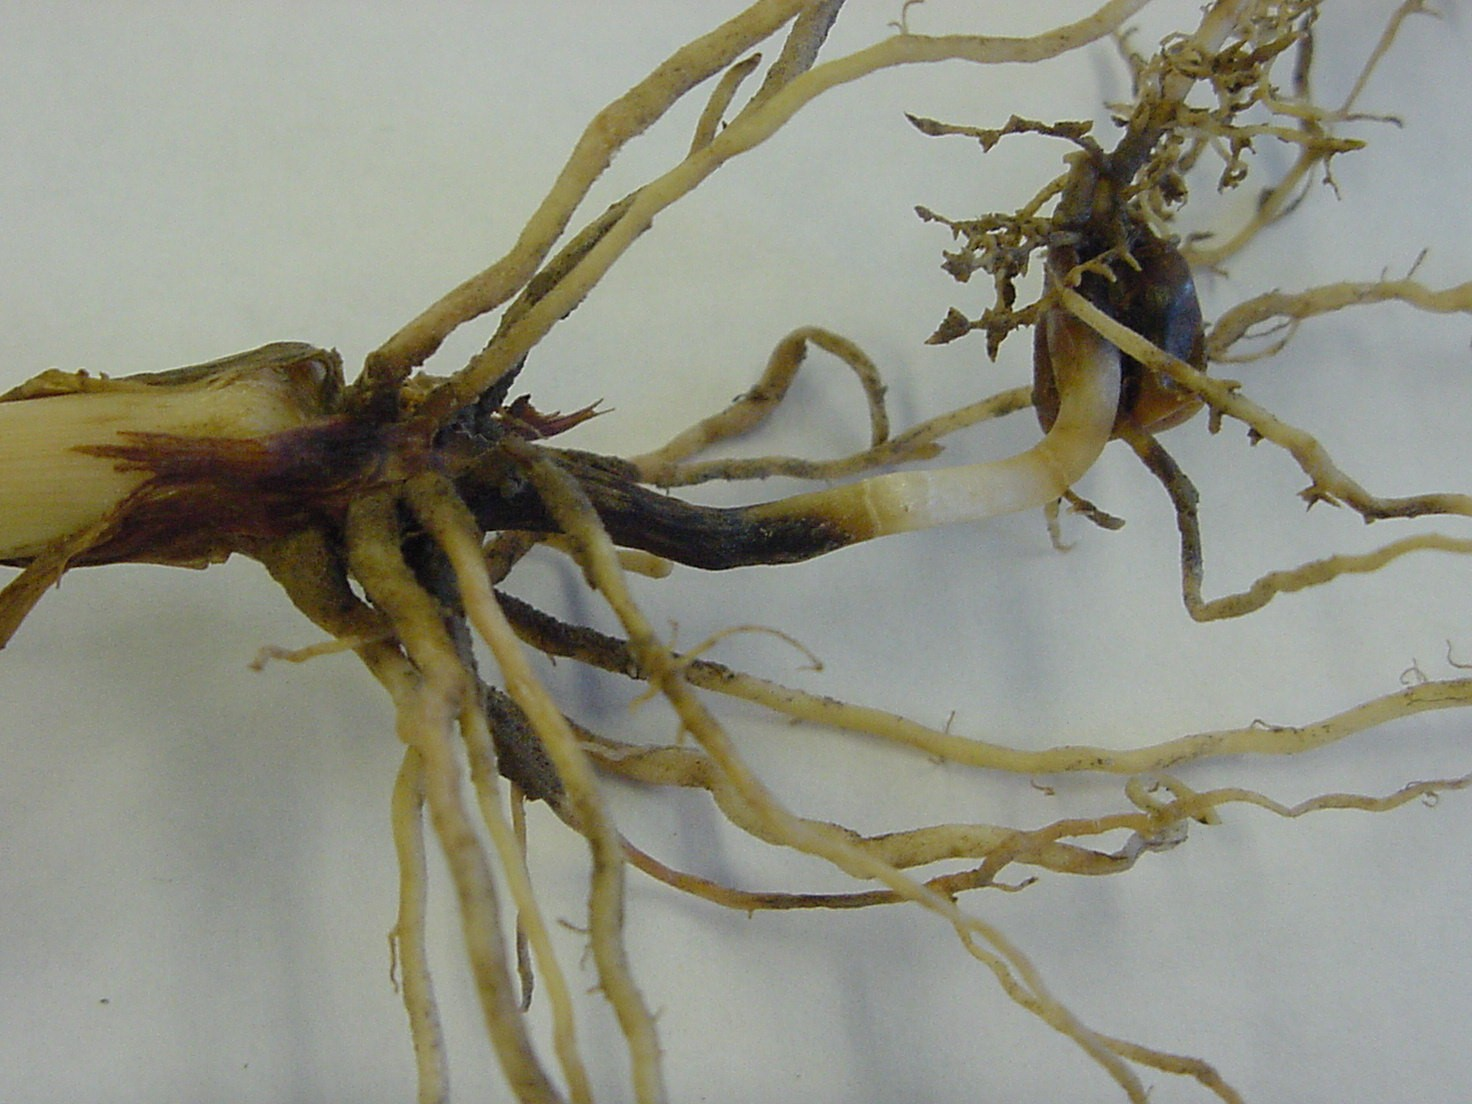 Corn roots that have been dug up and washed, revealing rot.